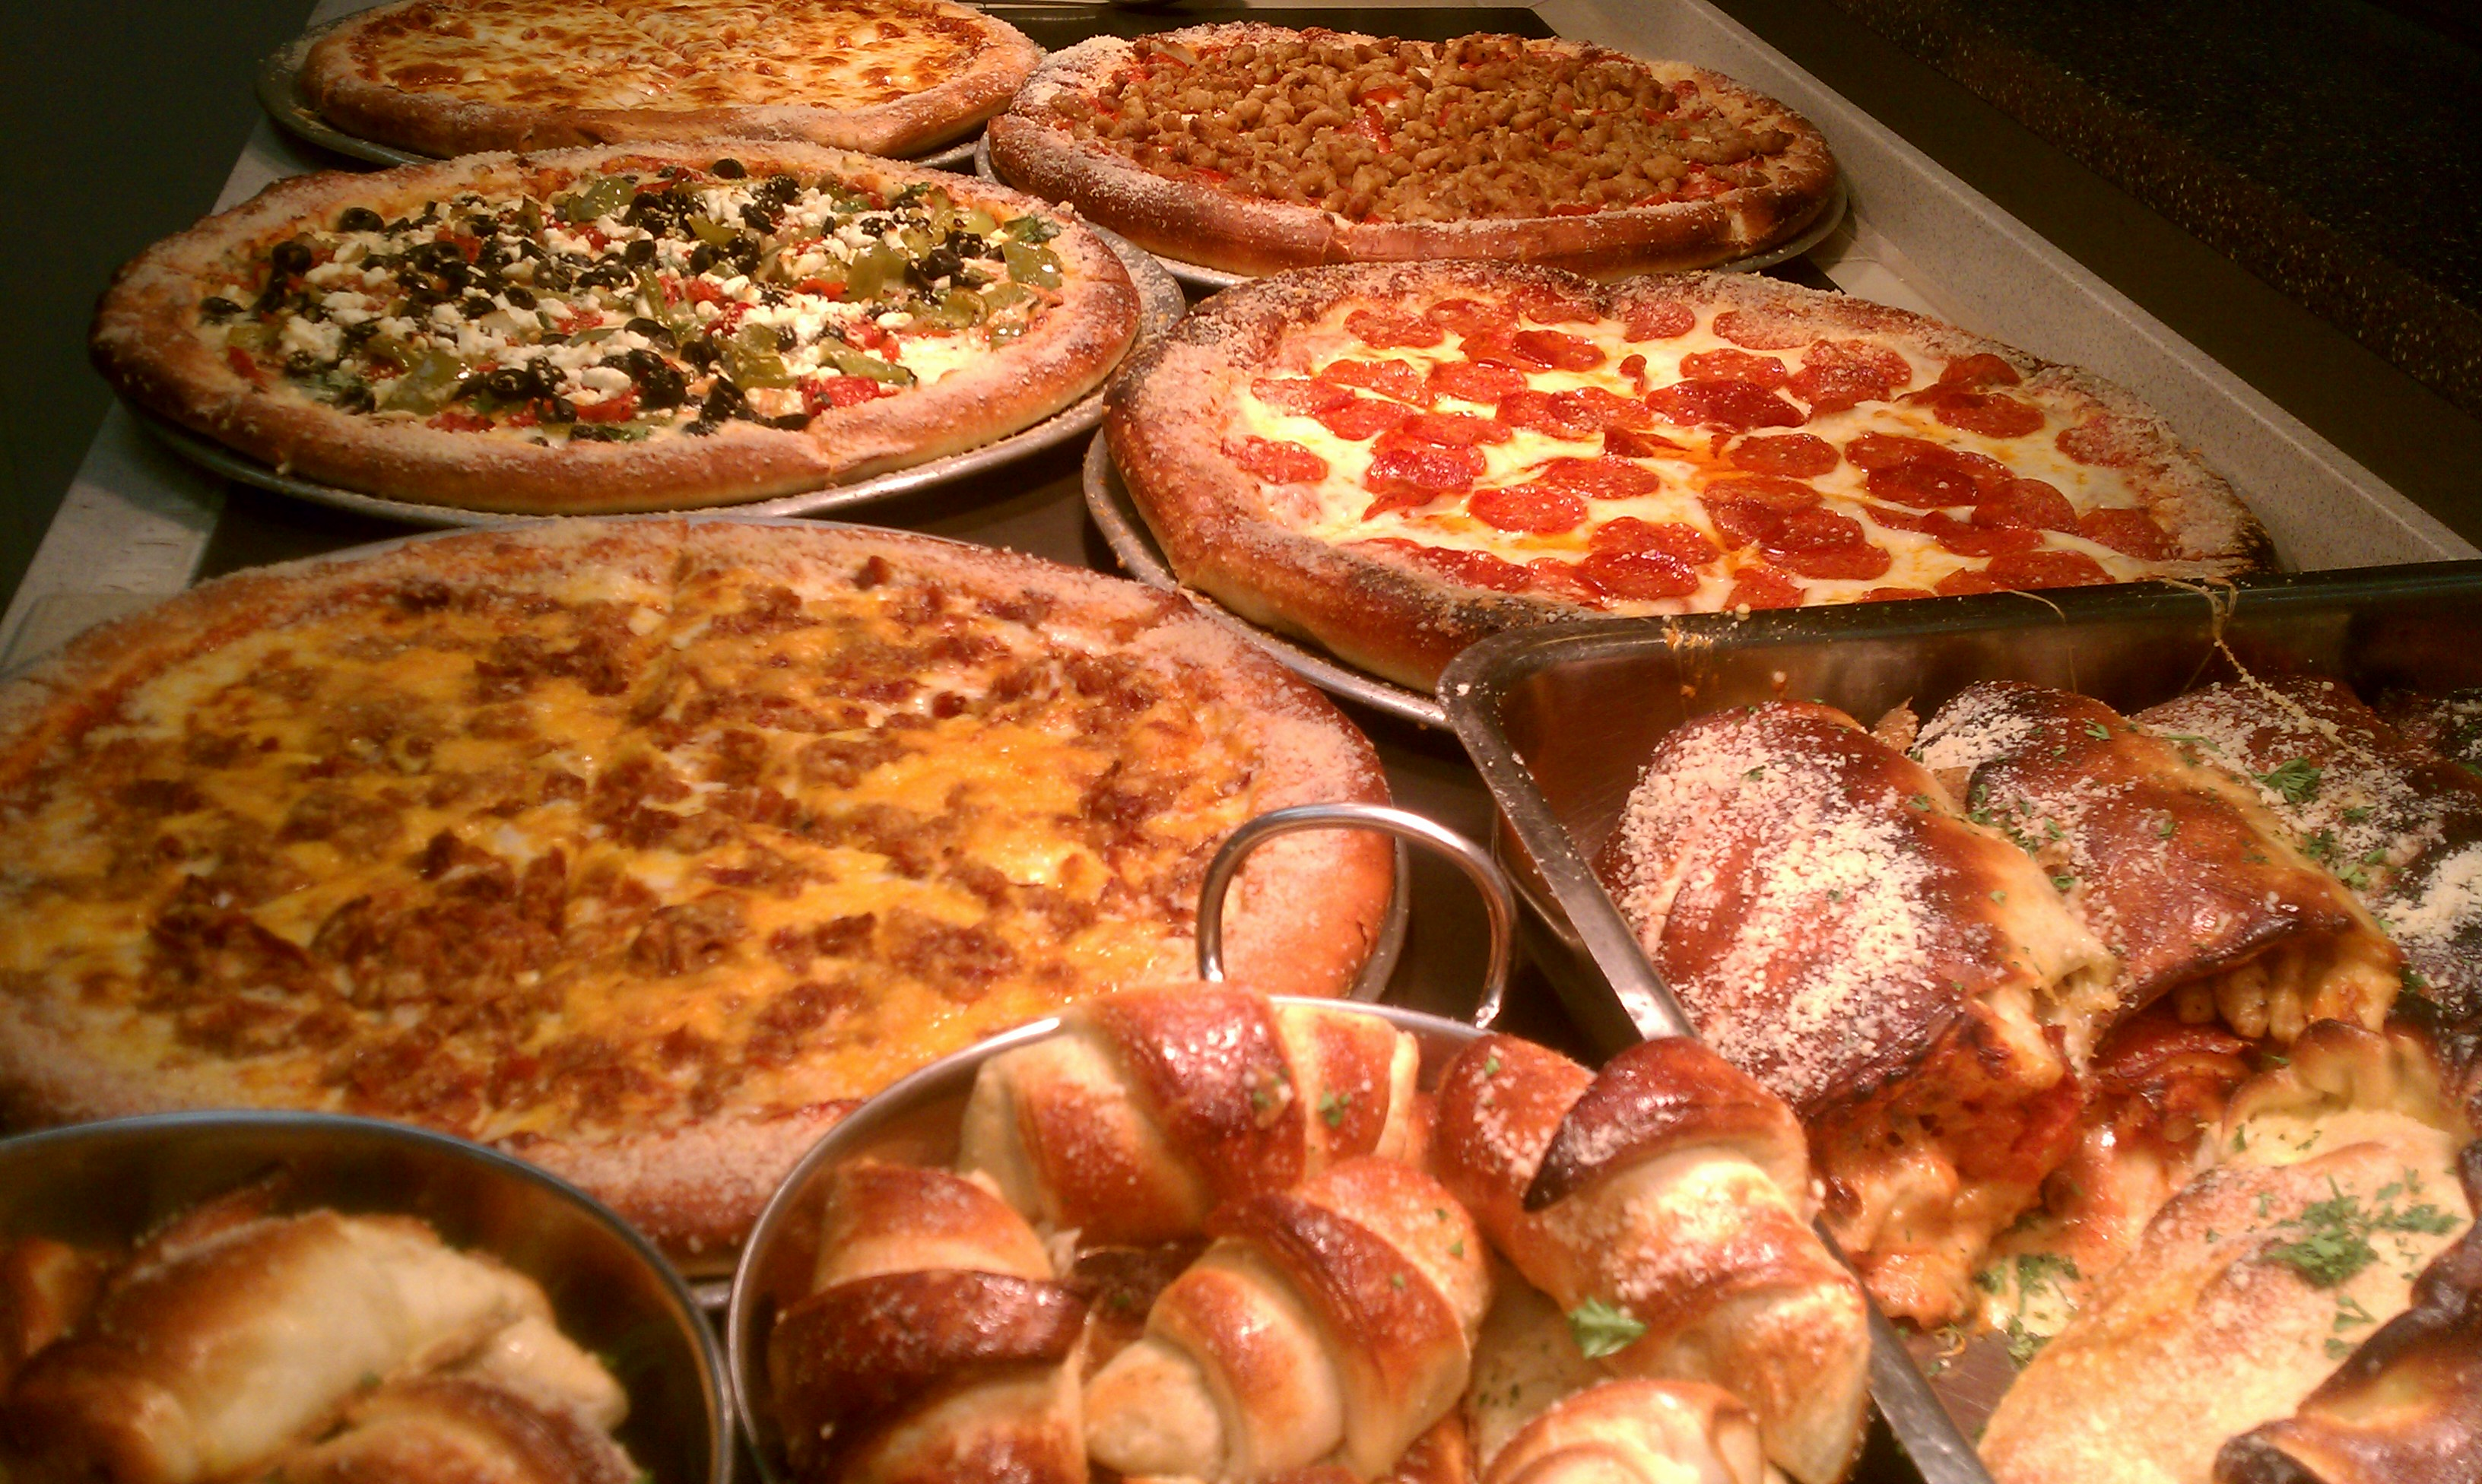 Order delivery online from Marco's Pizza in Raleigh instantly! View Marco's Pizza's November deals, coupons & menus. Order delivery online right now or by phone from GrubHubLocation: Hillsborough St, Raleigh, , NC.